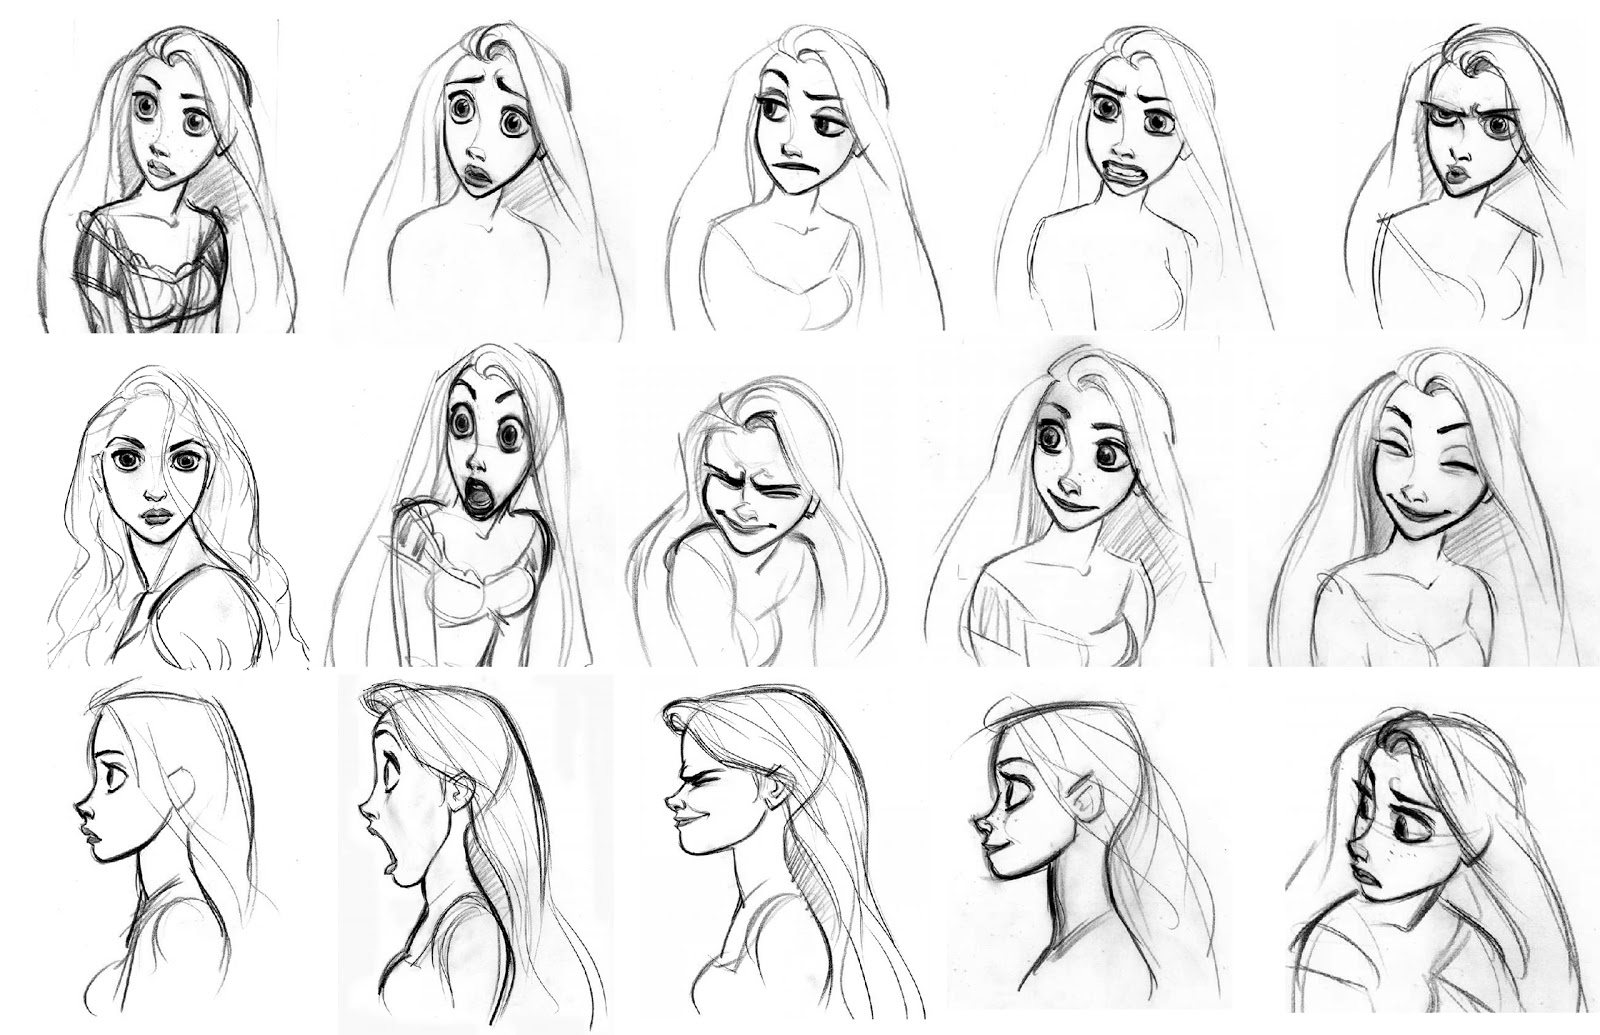 Character Design Animation Tutorial : Rapunzel character designs expression sheets tangled